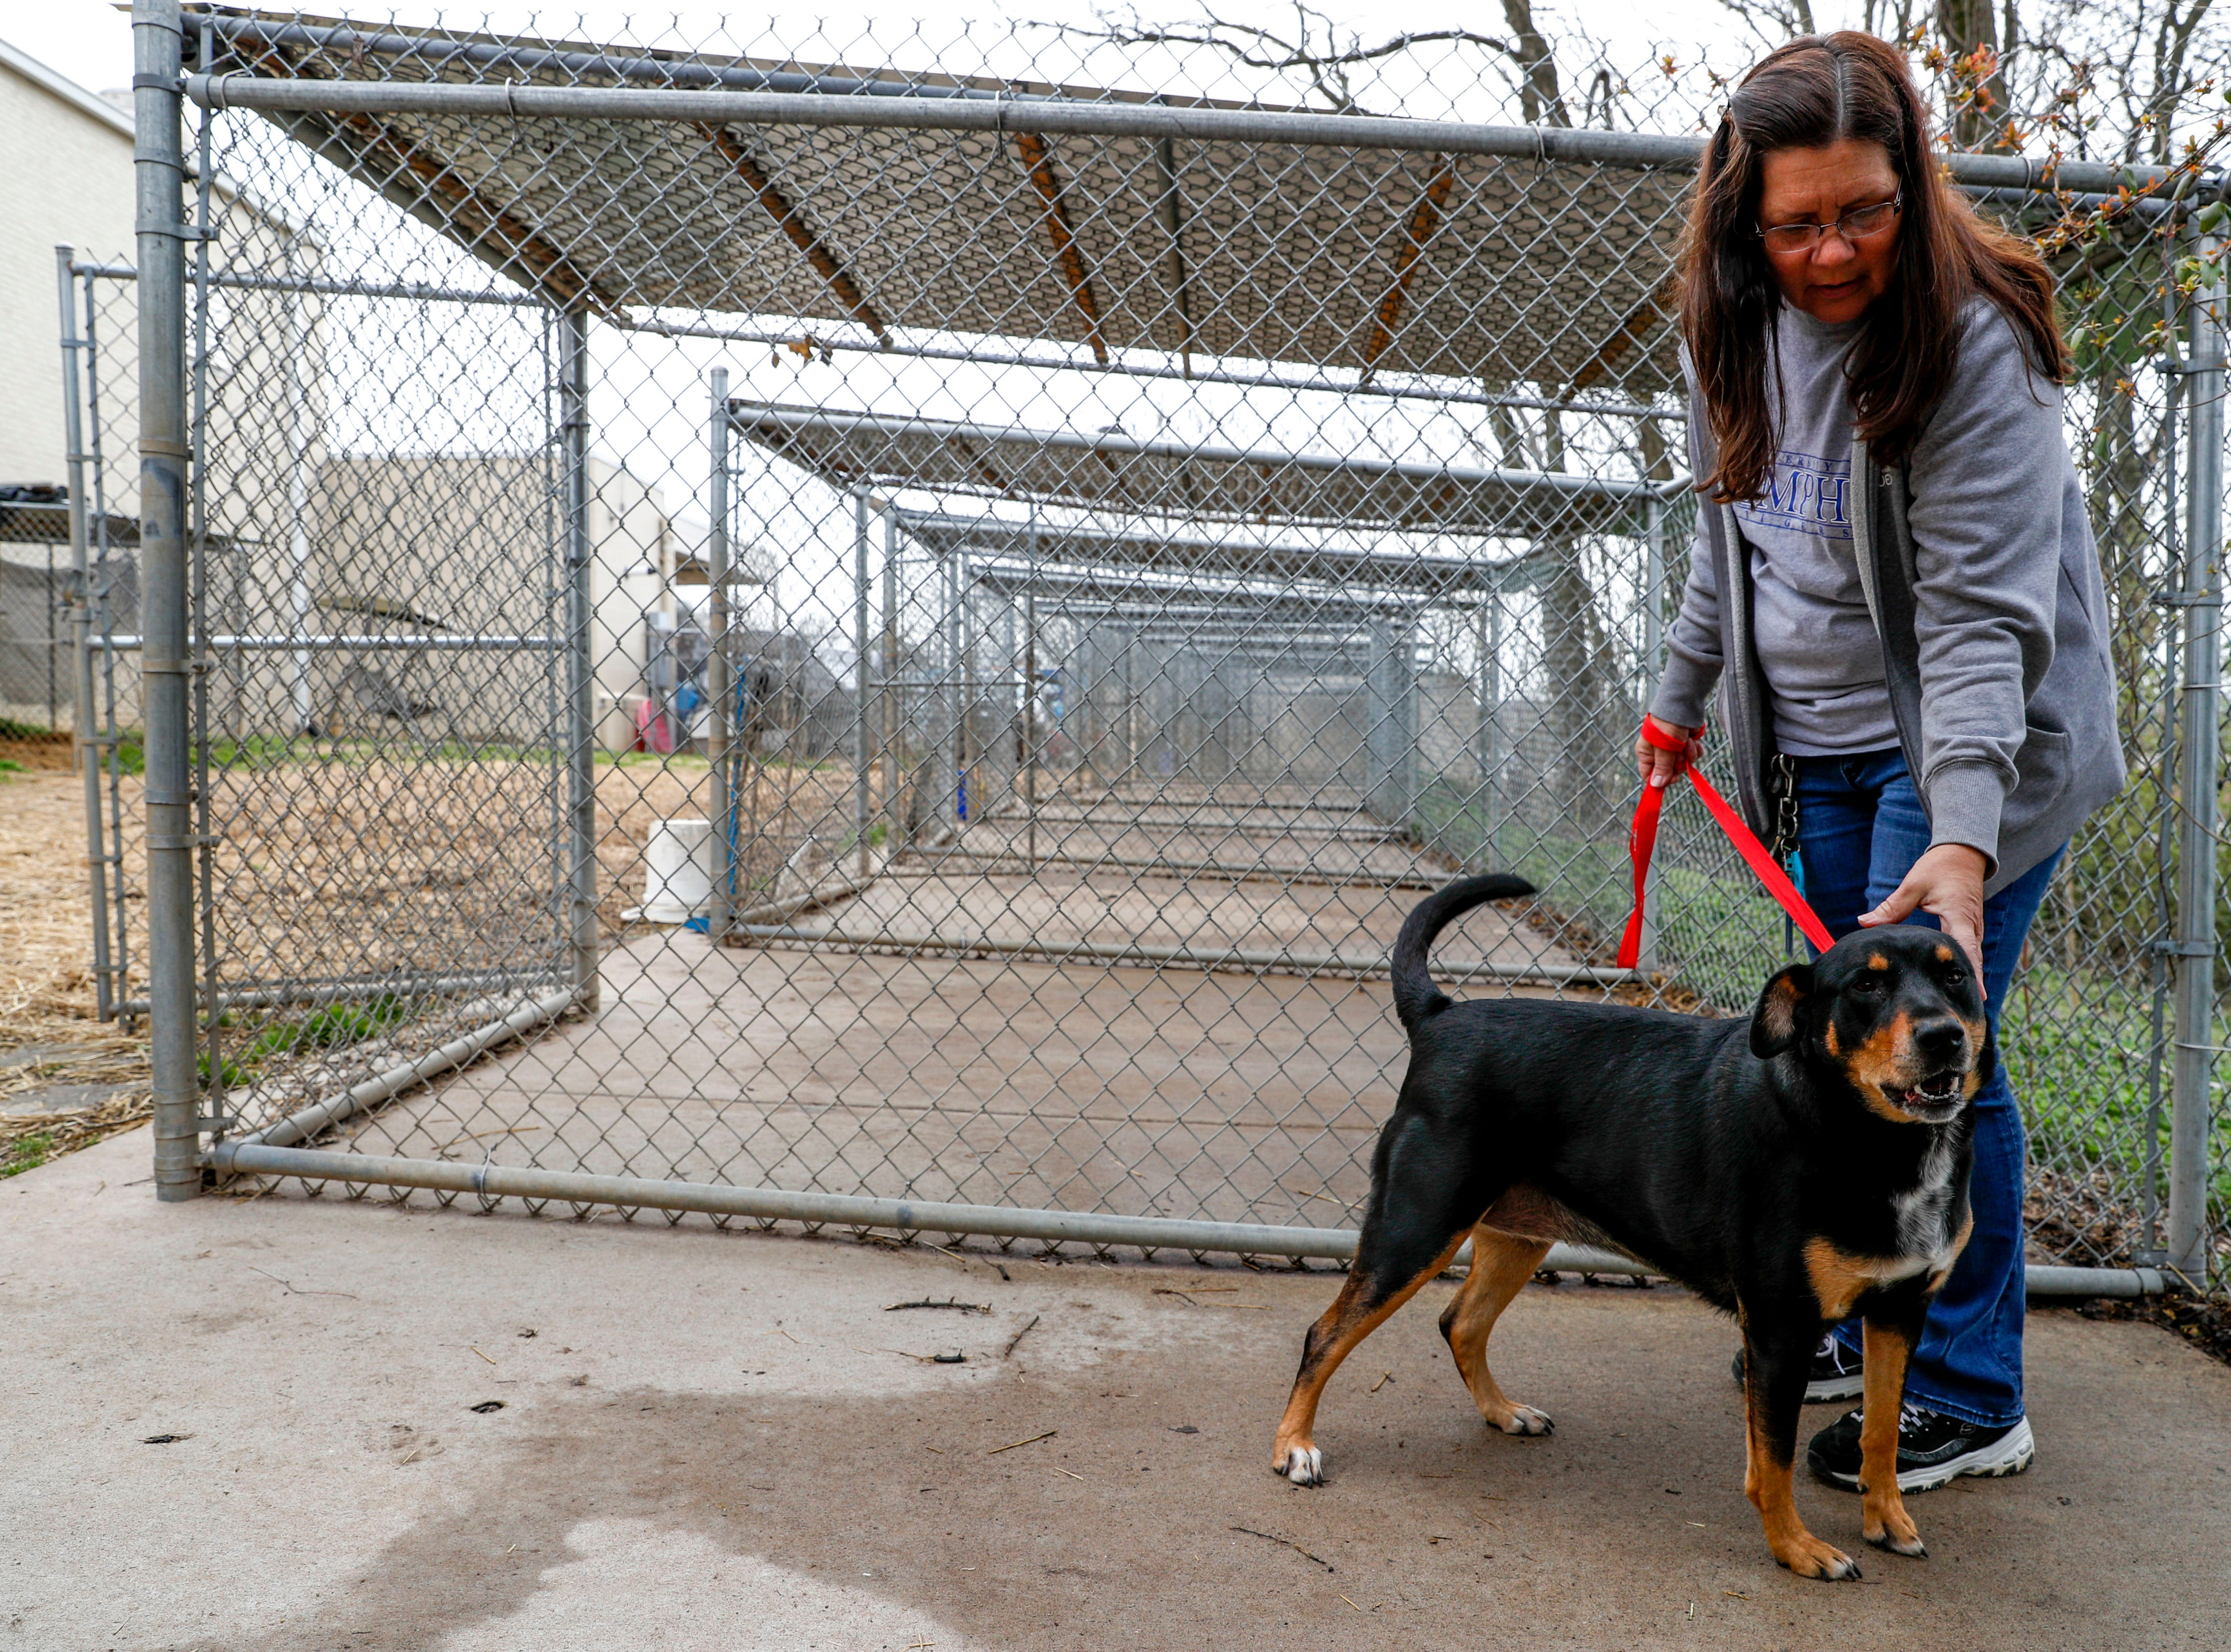 Lola, a Labrador retriever, plays with Lori Suiter on a visit outside at Montgomery County Animal Care and Control in Clarksville, Tenn., on Wednesday, March 13, 2019.